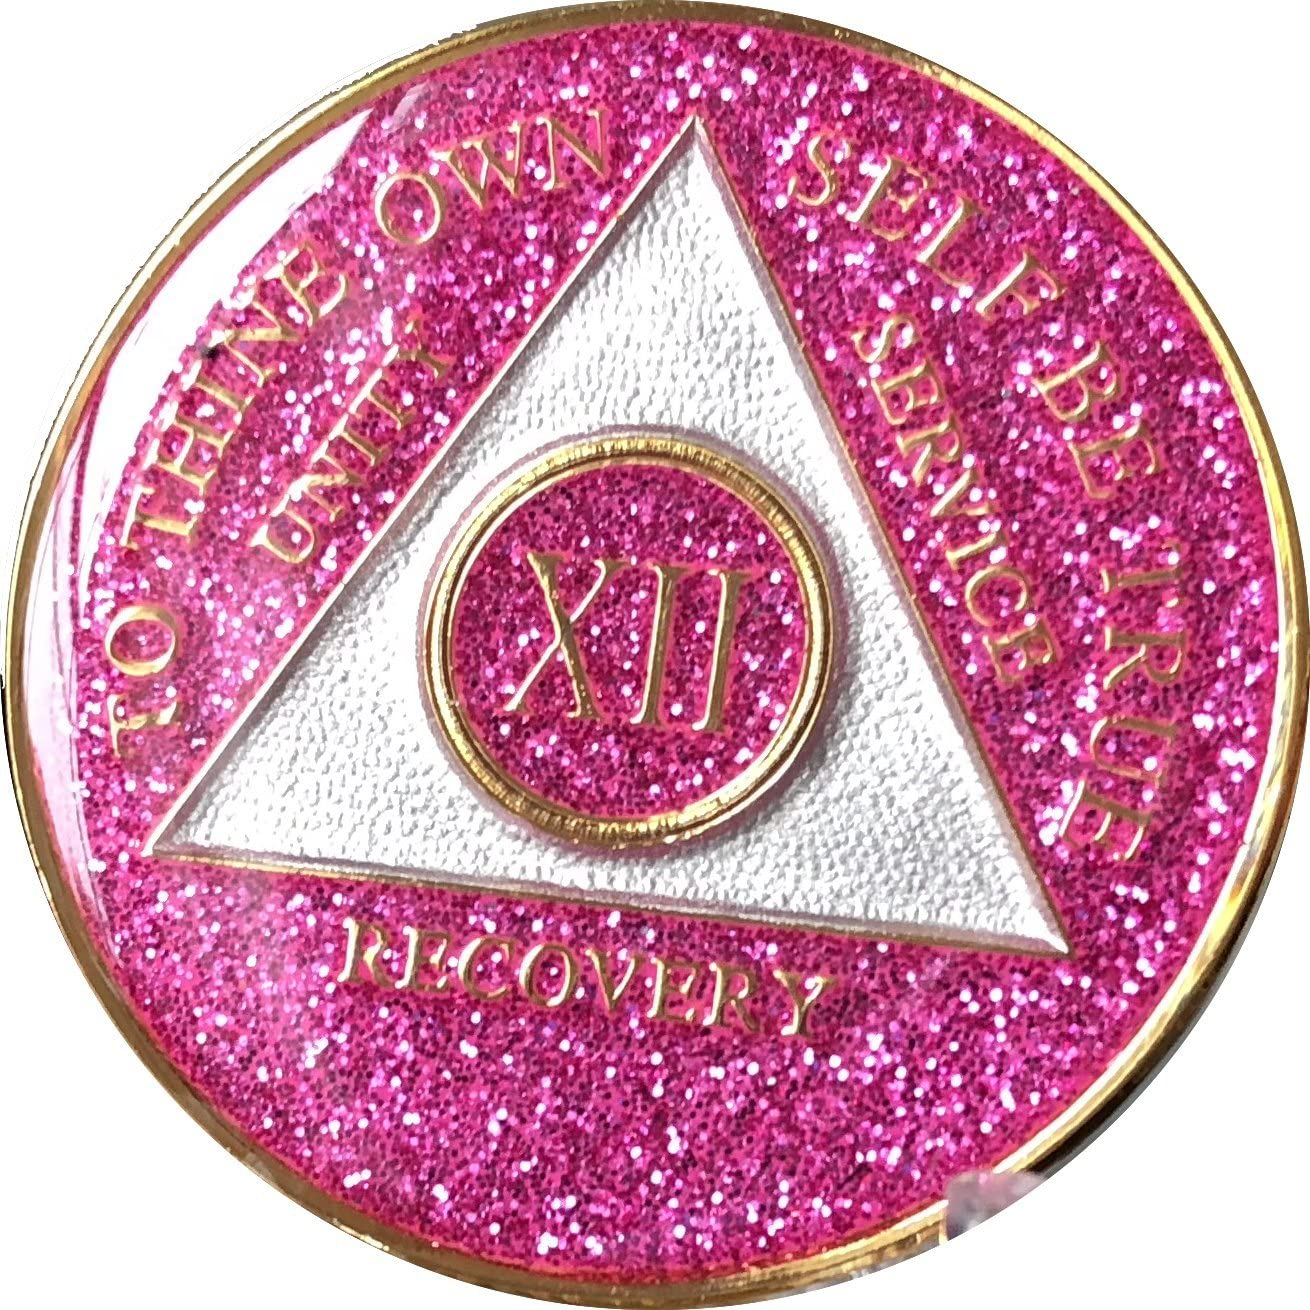 12 Year AA Medallion Glitter Pink Tri-Plate Chip XII